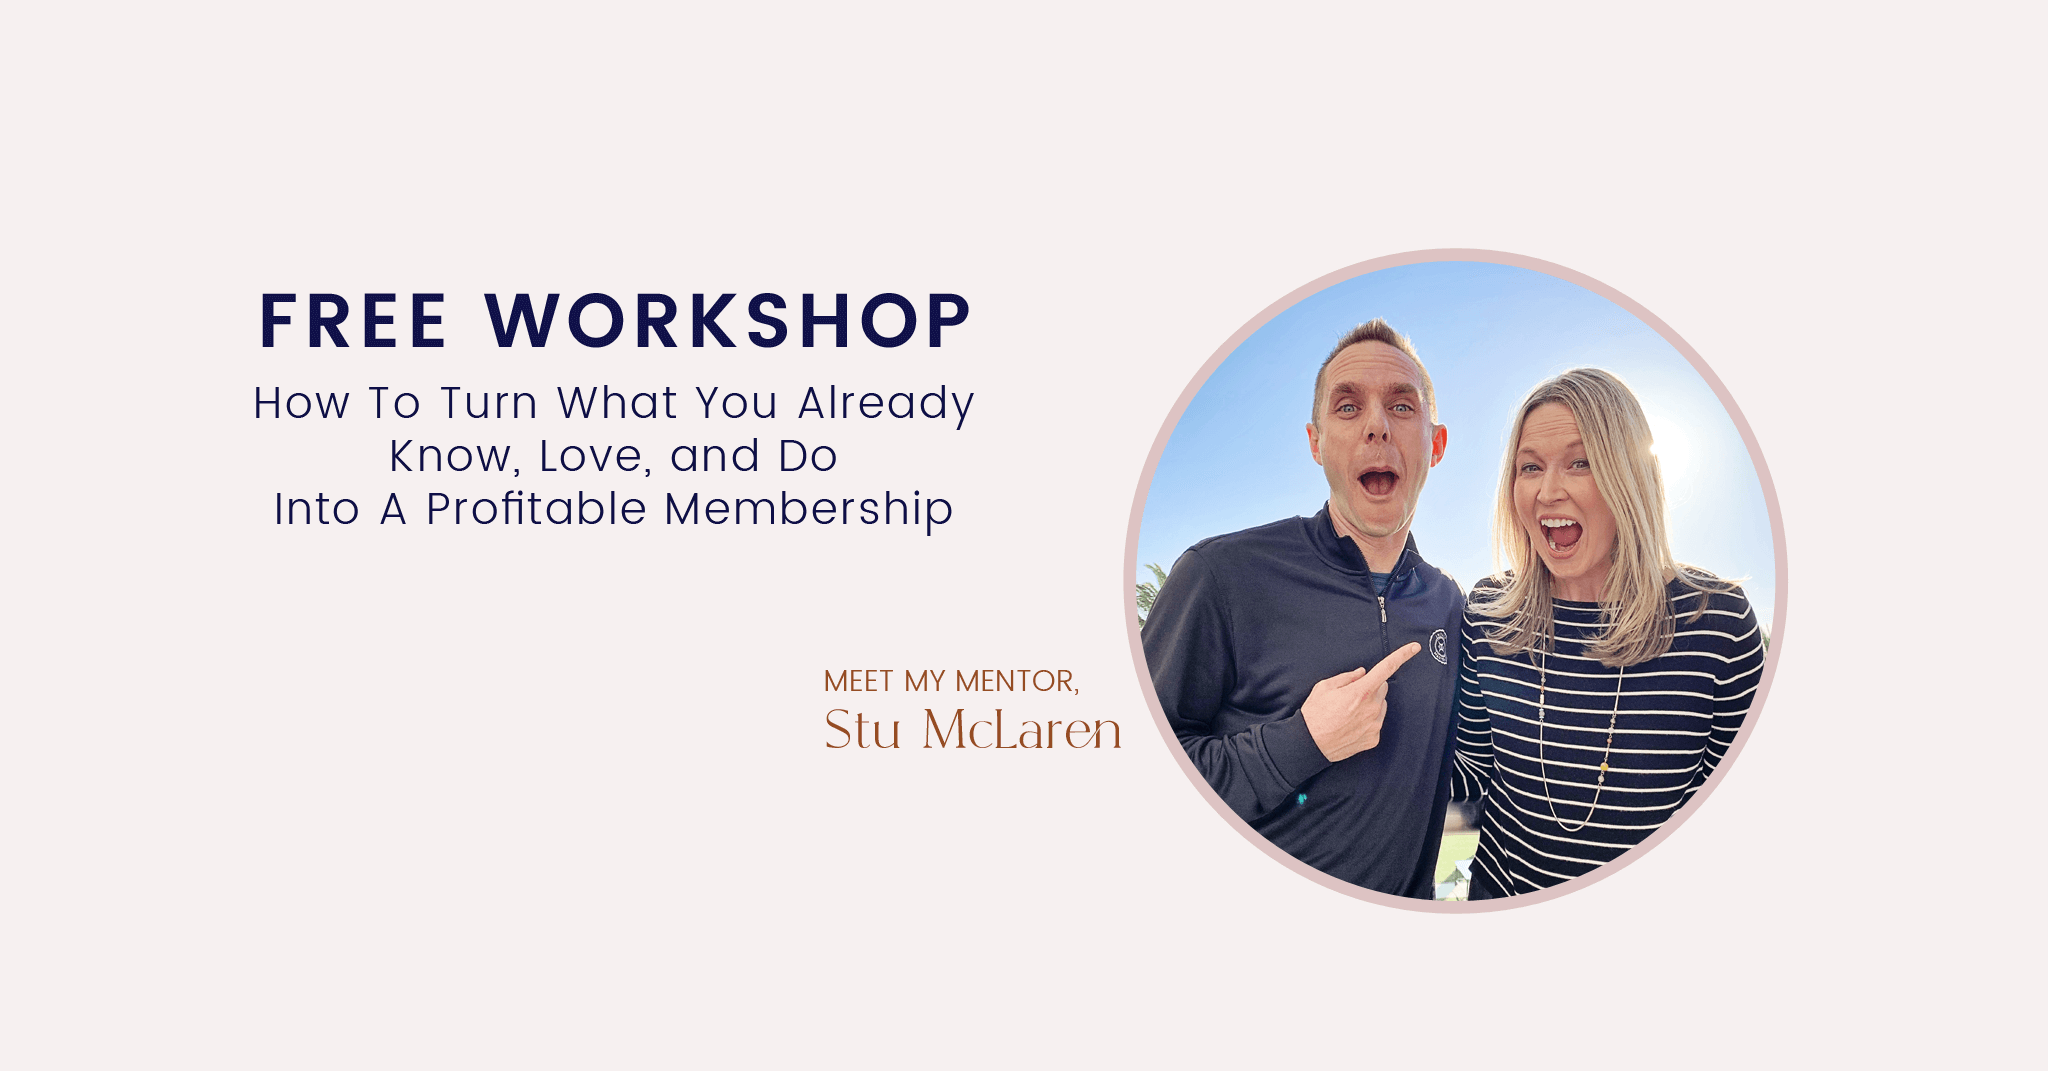 Membership Site Secrets: How To Turn Your Passion Into Recurring Revenue